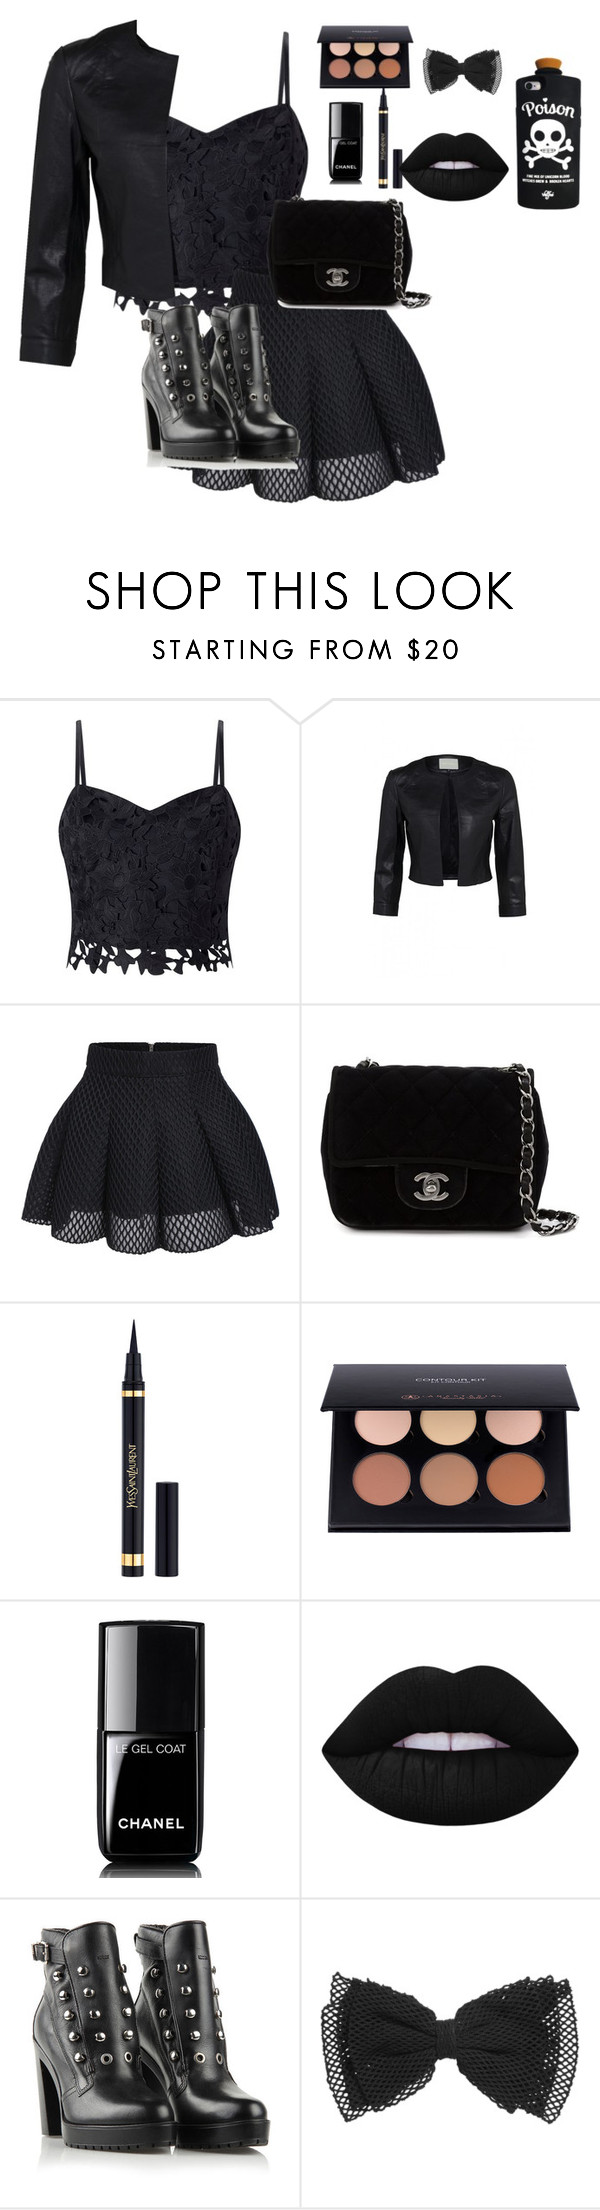 """Untitled #145"" by ciara-dexter ❤ liked on Polyvore featuring interior, interiors, interior design, home, home decor, interior decorating, Lipsy, Chanel, Lime Crime and Diesel"